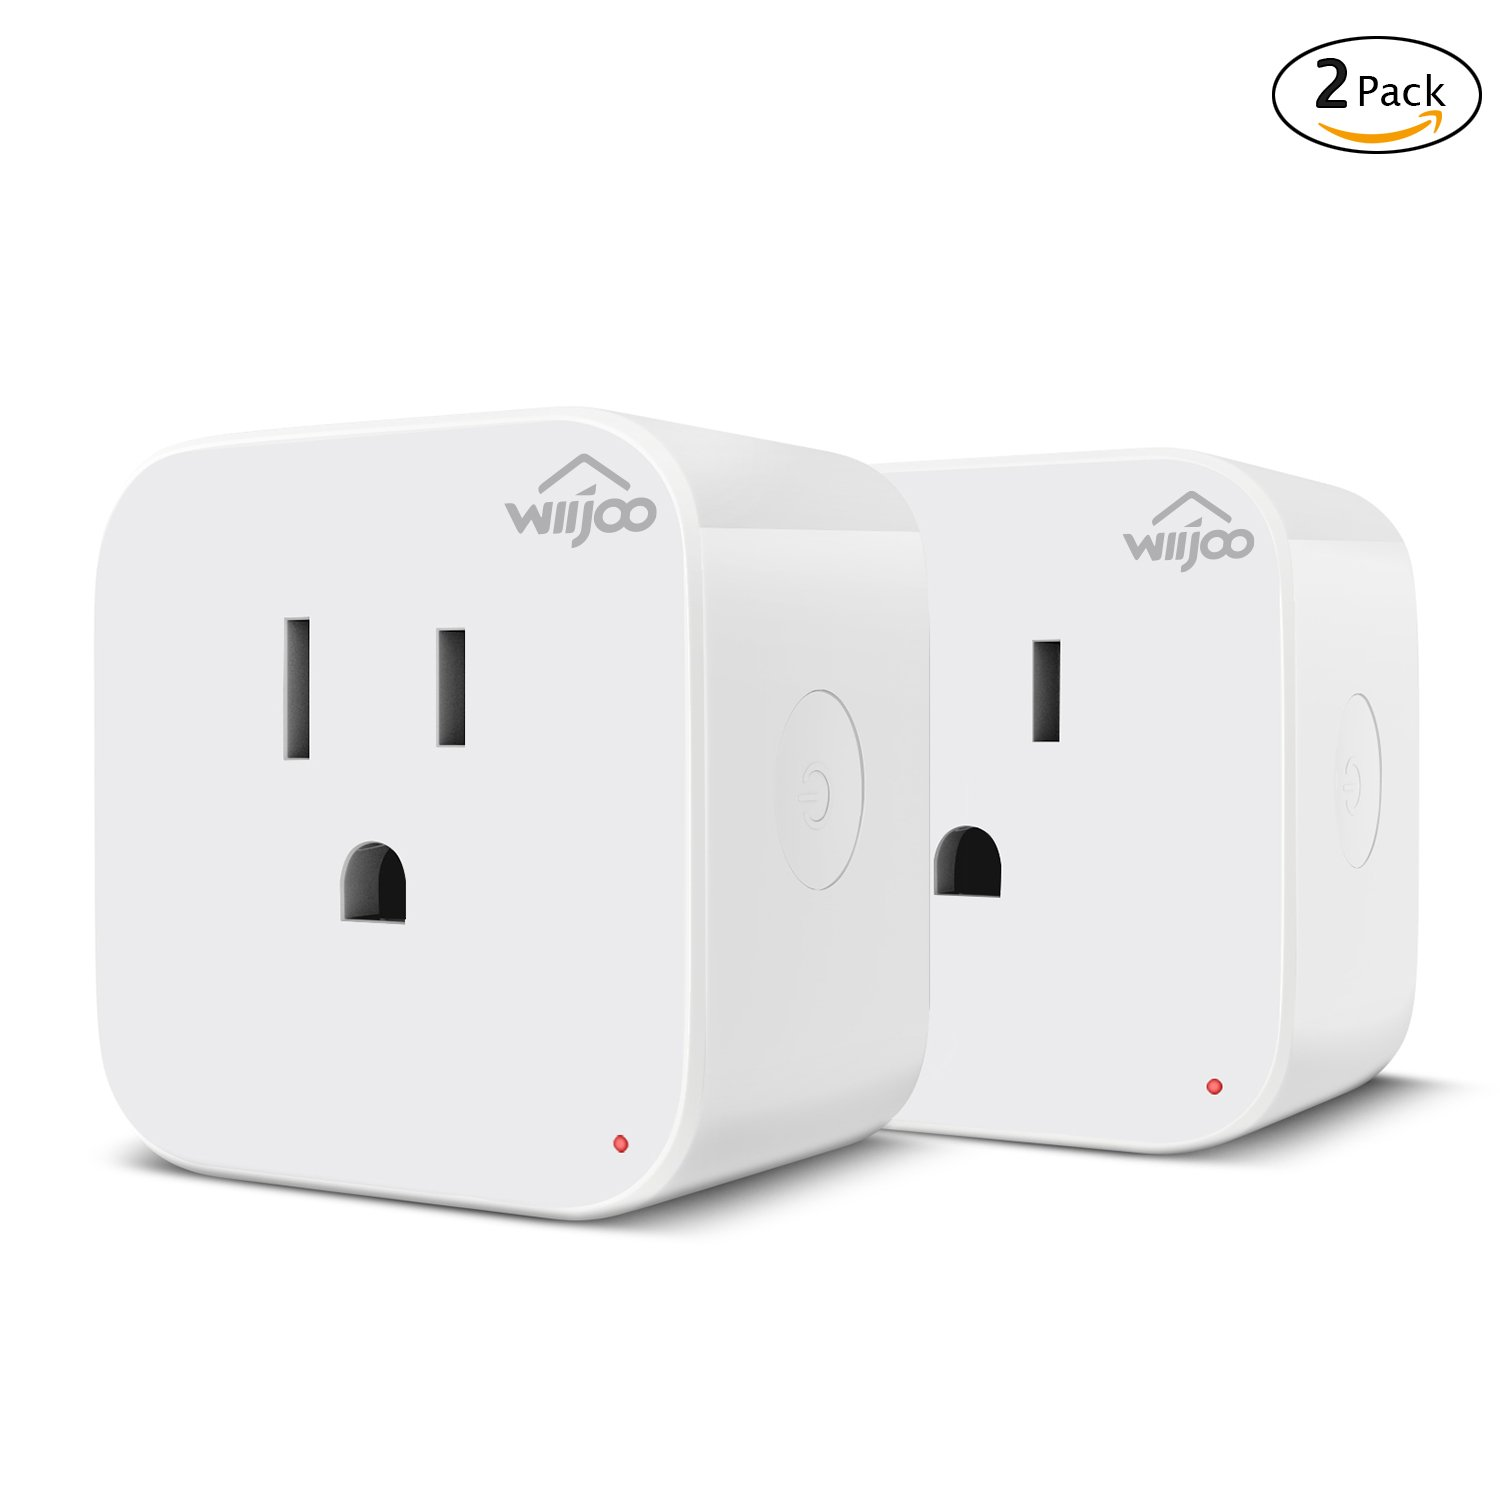 Smart Plug Outlet Compatible with Amazon Alexa Google Home, Mini Wifi Outlet Smart Socket with Energy Monitoring and Timer Function,No Hub Required, ETL Listed, White